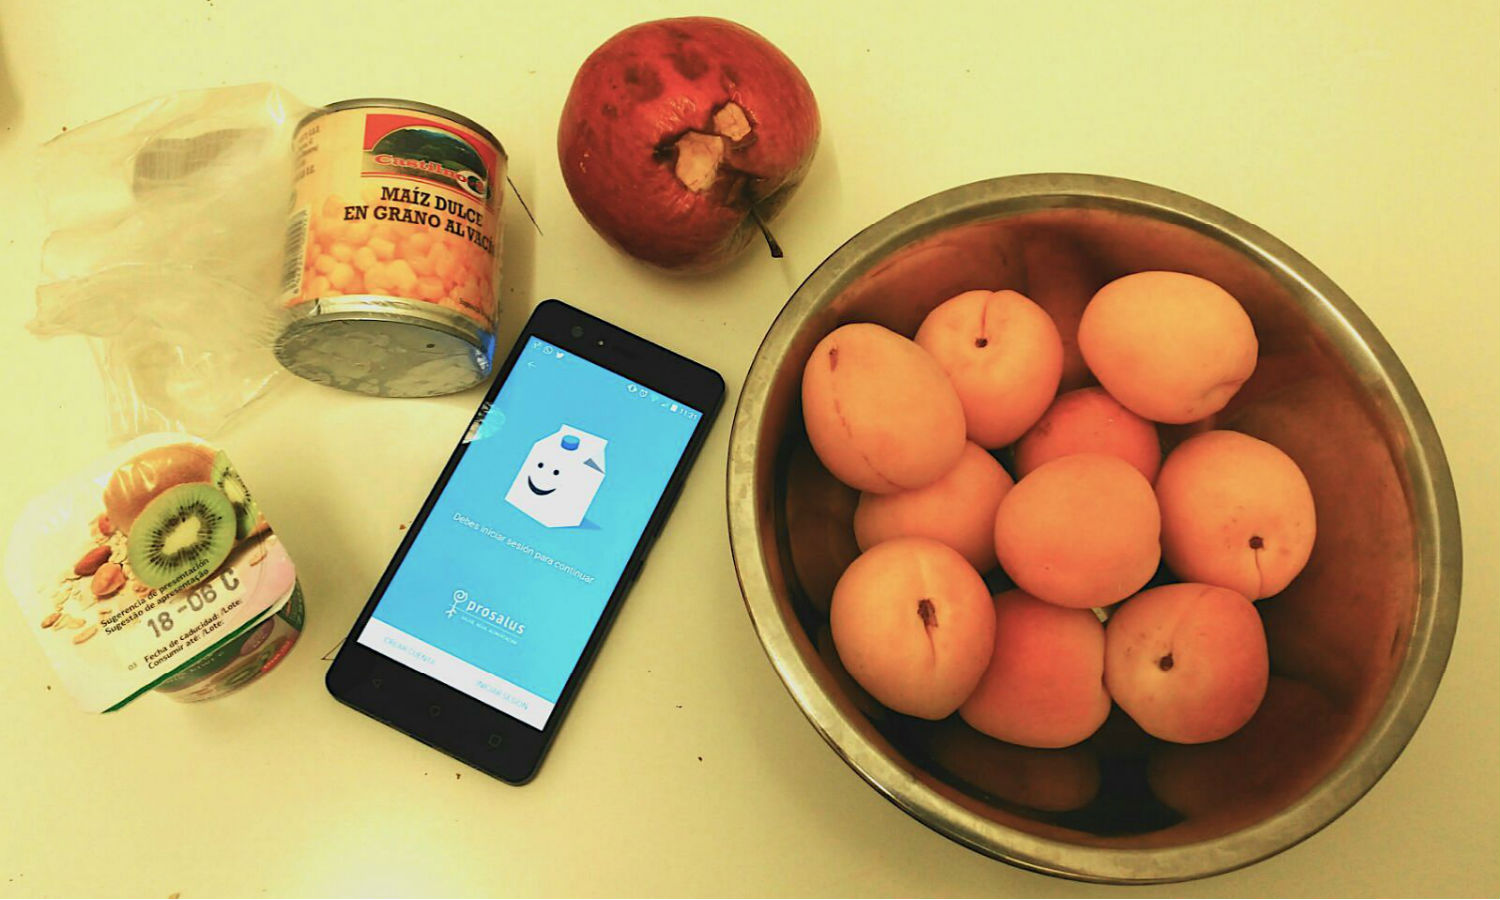 This app and website is helping neighbors share unwanted food and reduce food waste in Spain. Yonodesperdicio, an initiative from Spain is using food sharing as a tool to fight food waste.